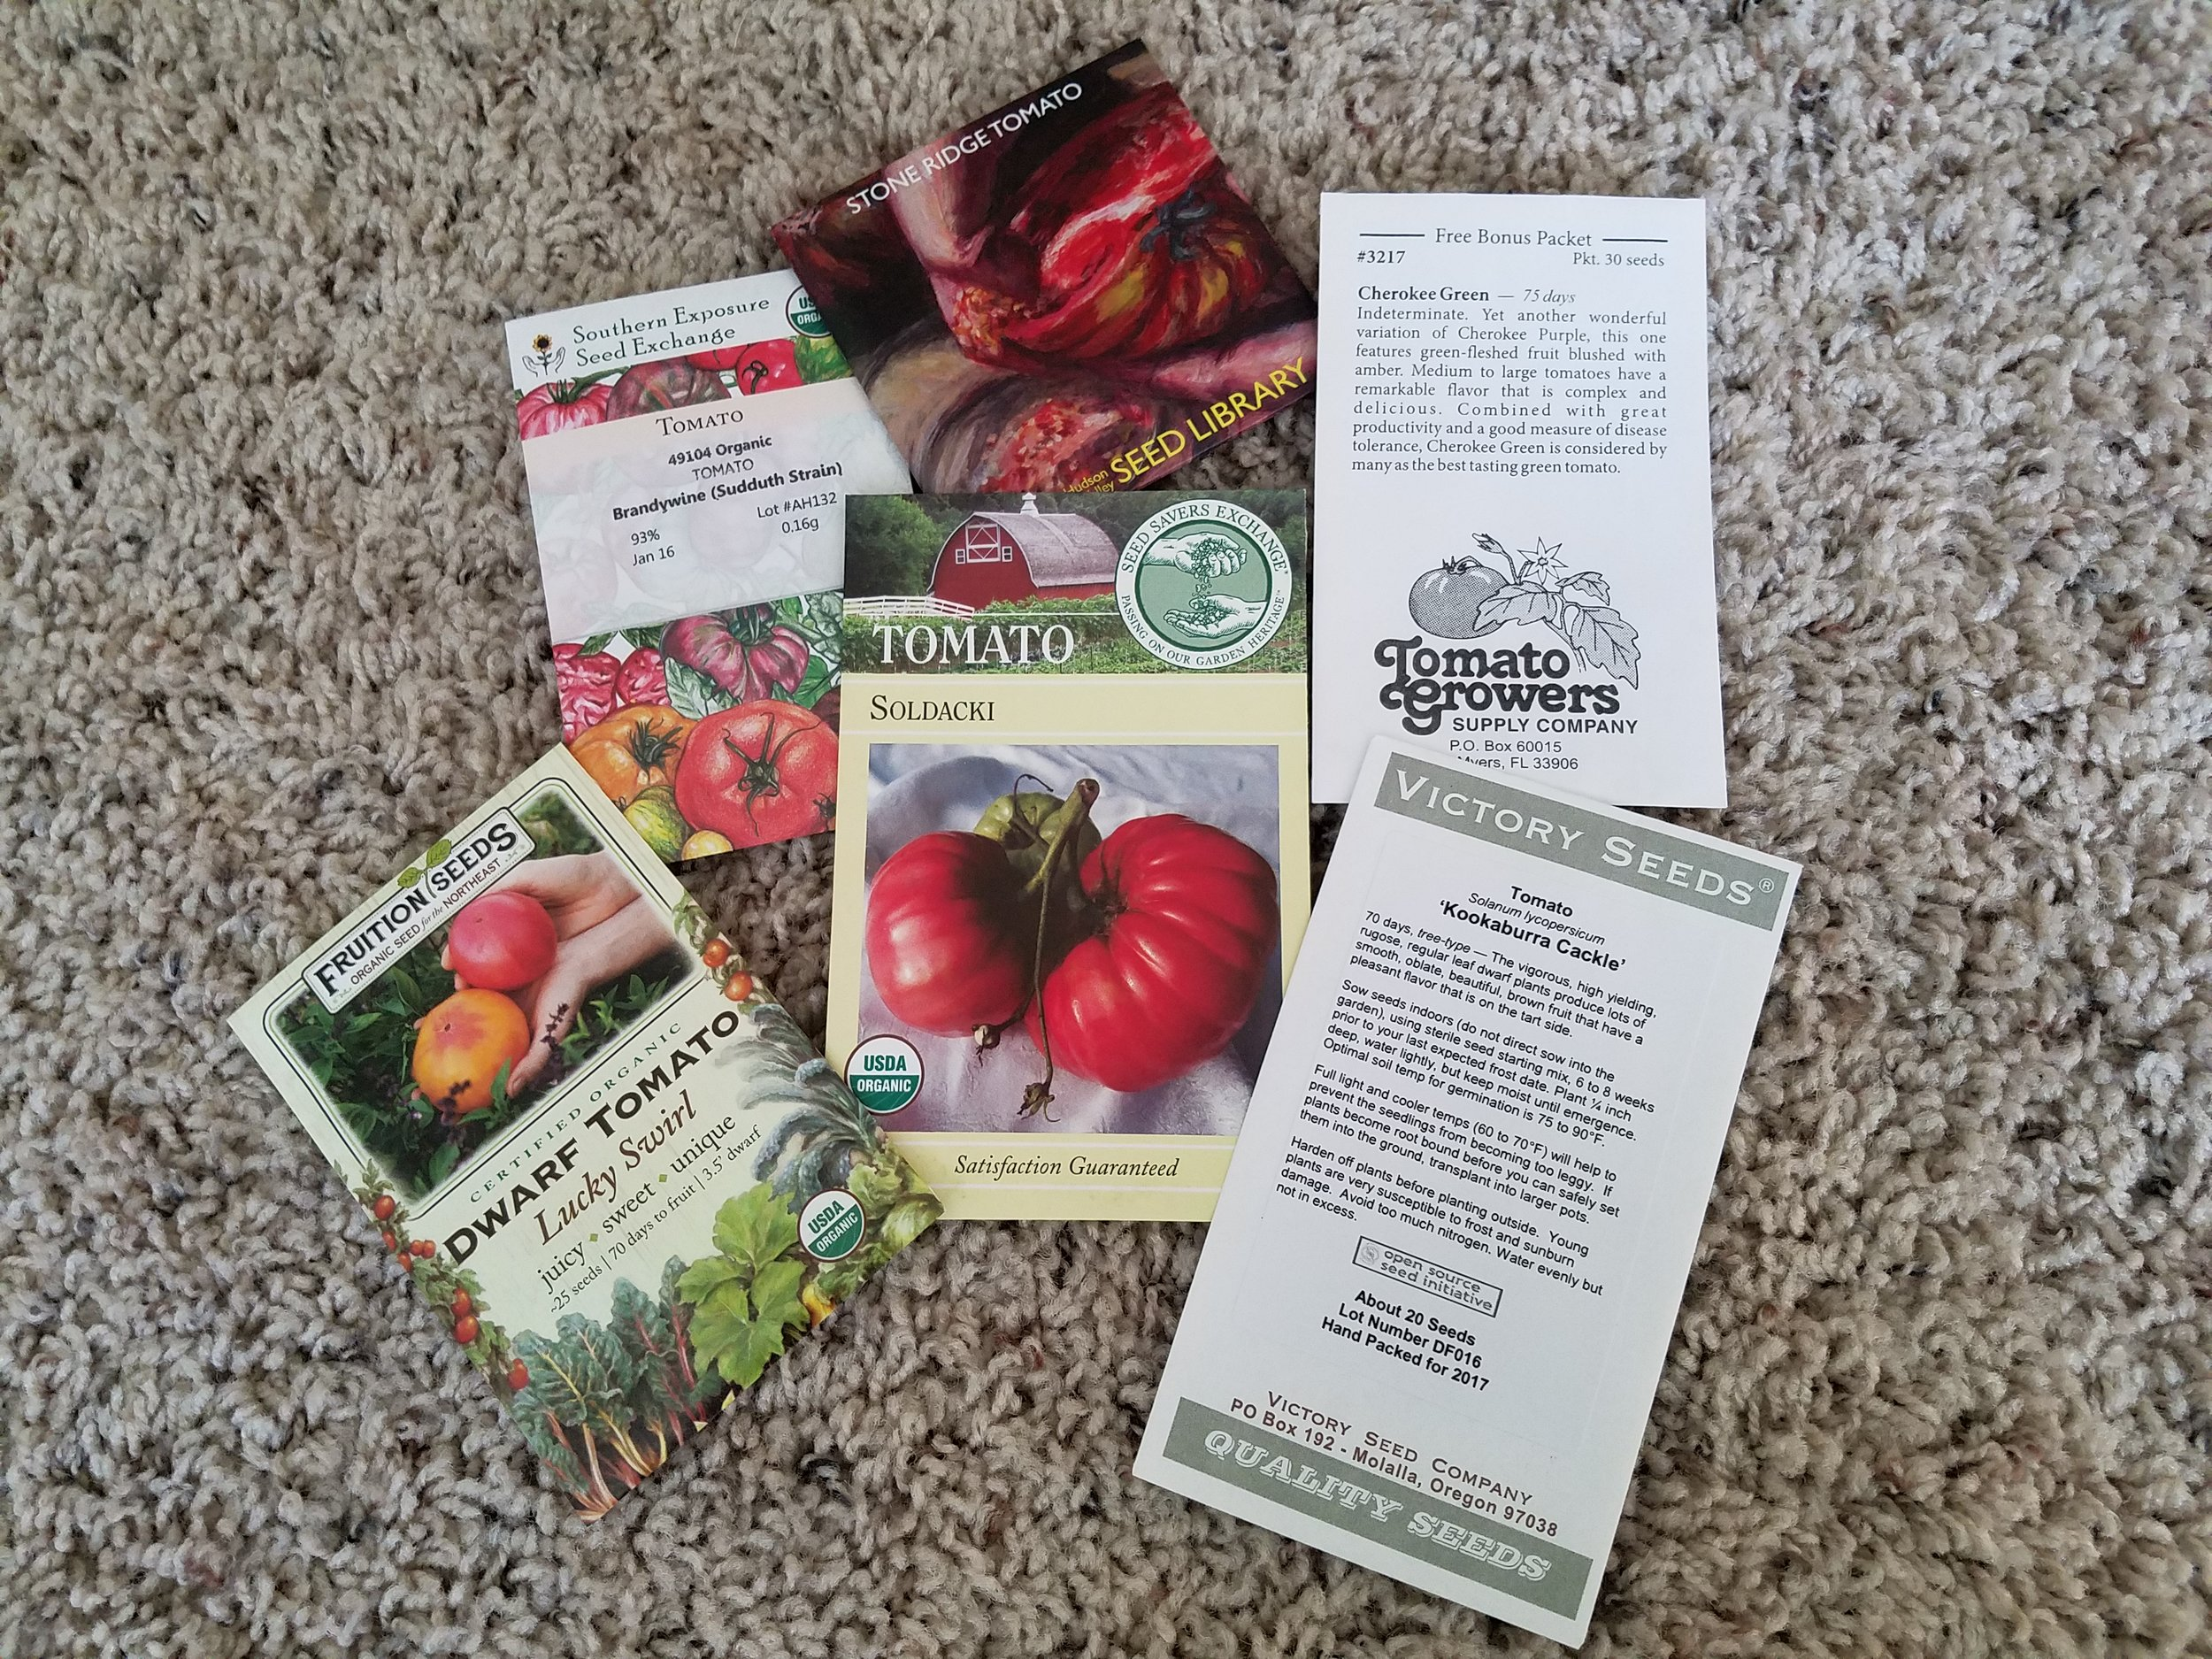 Sampling of seeds ready for handing out at my 2018 events, thanks to the generosity and support of some of my favorite companies.